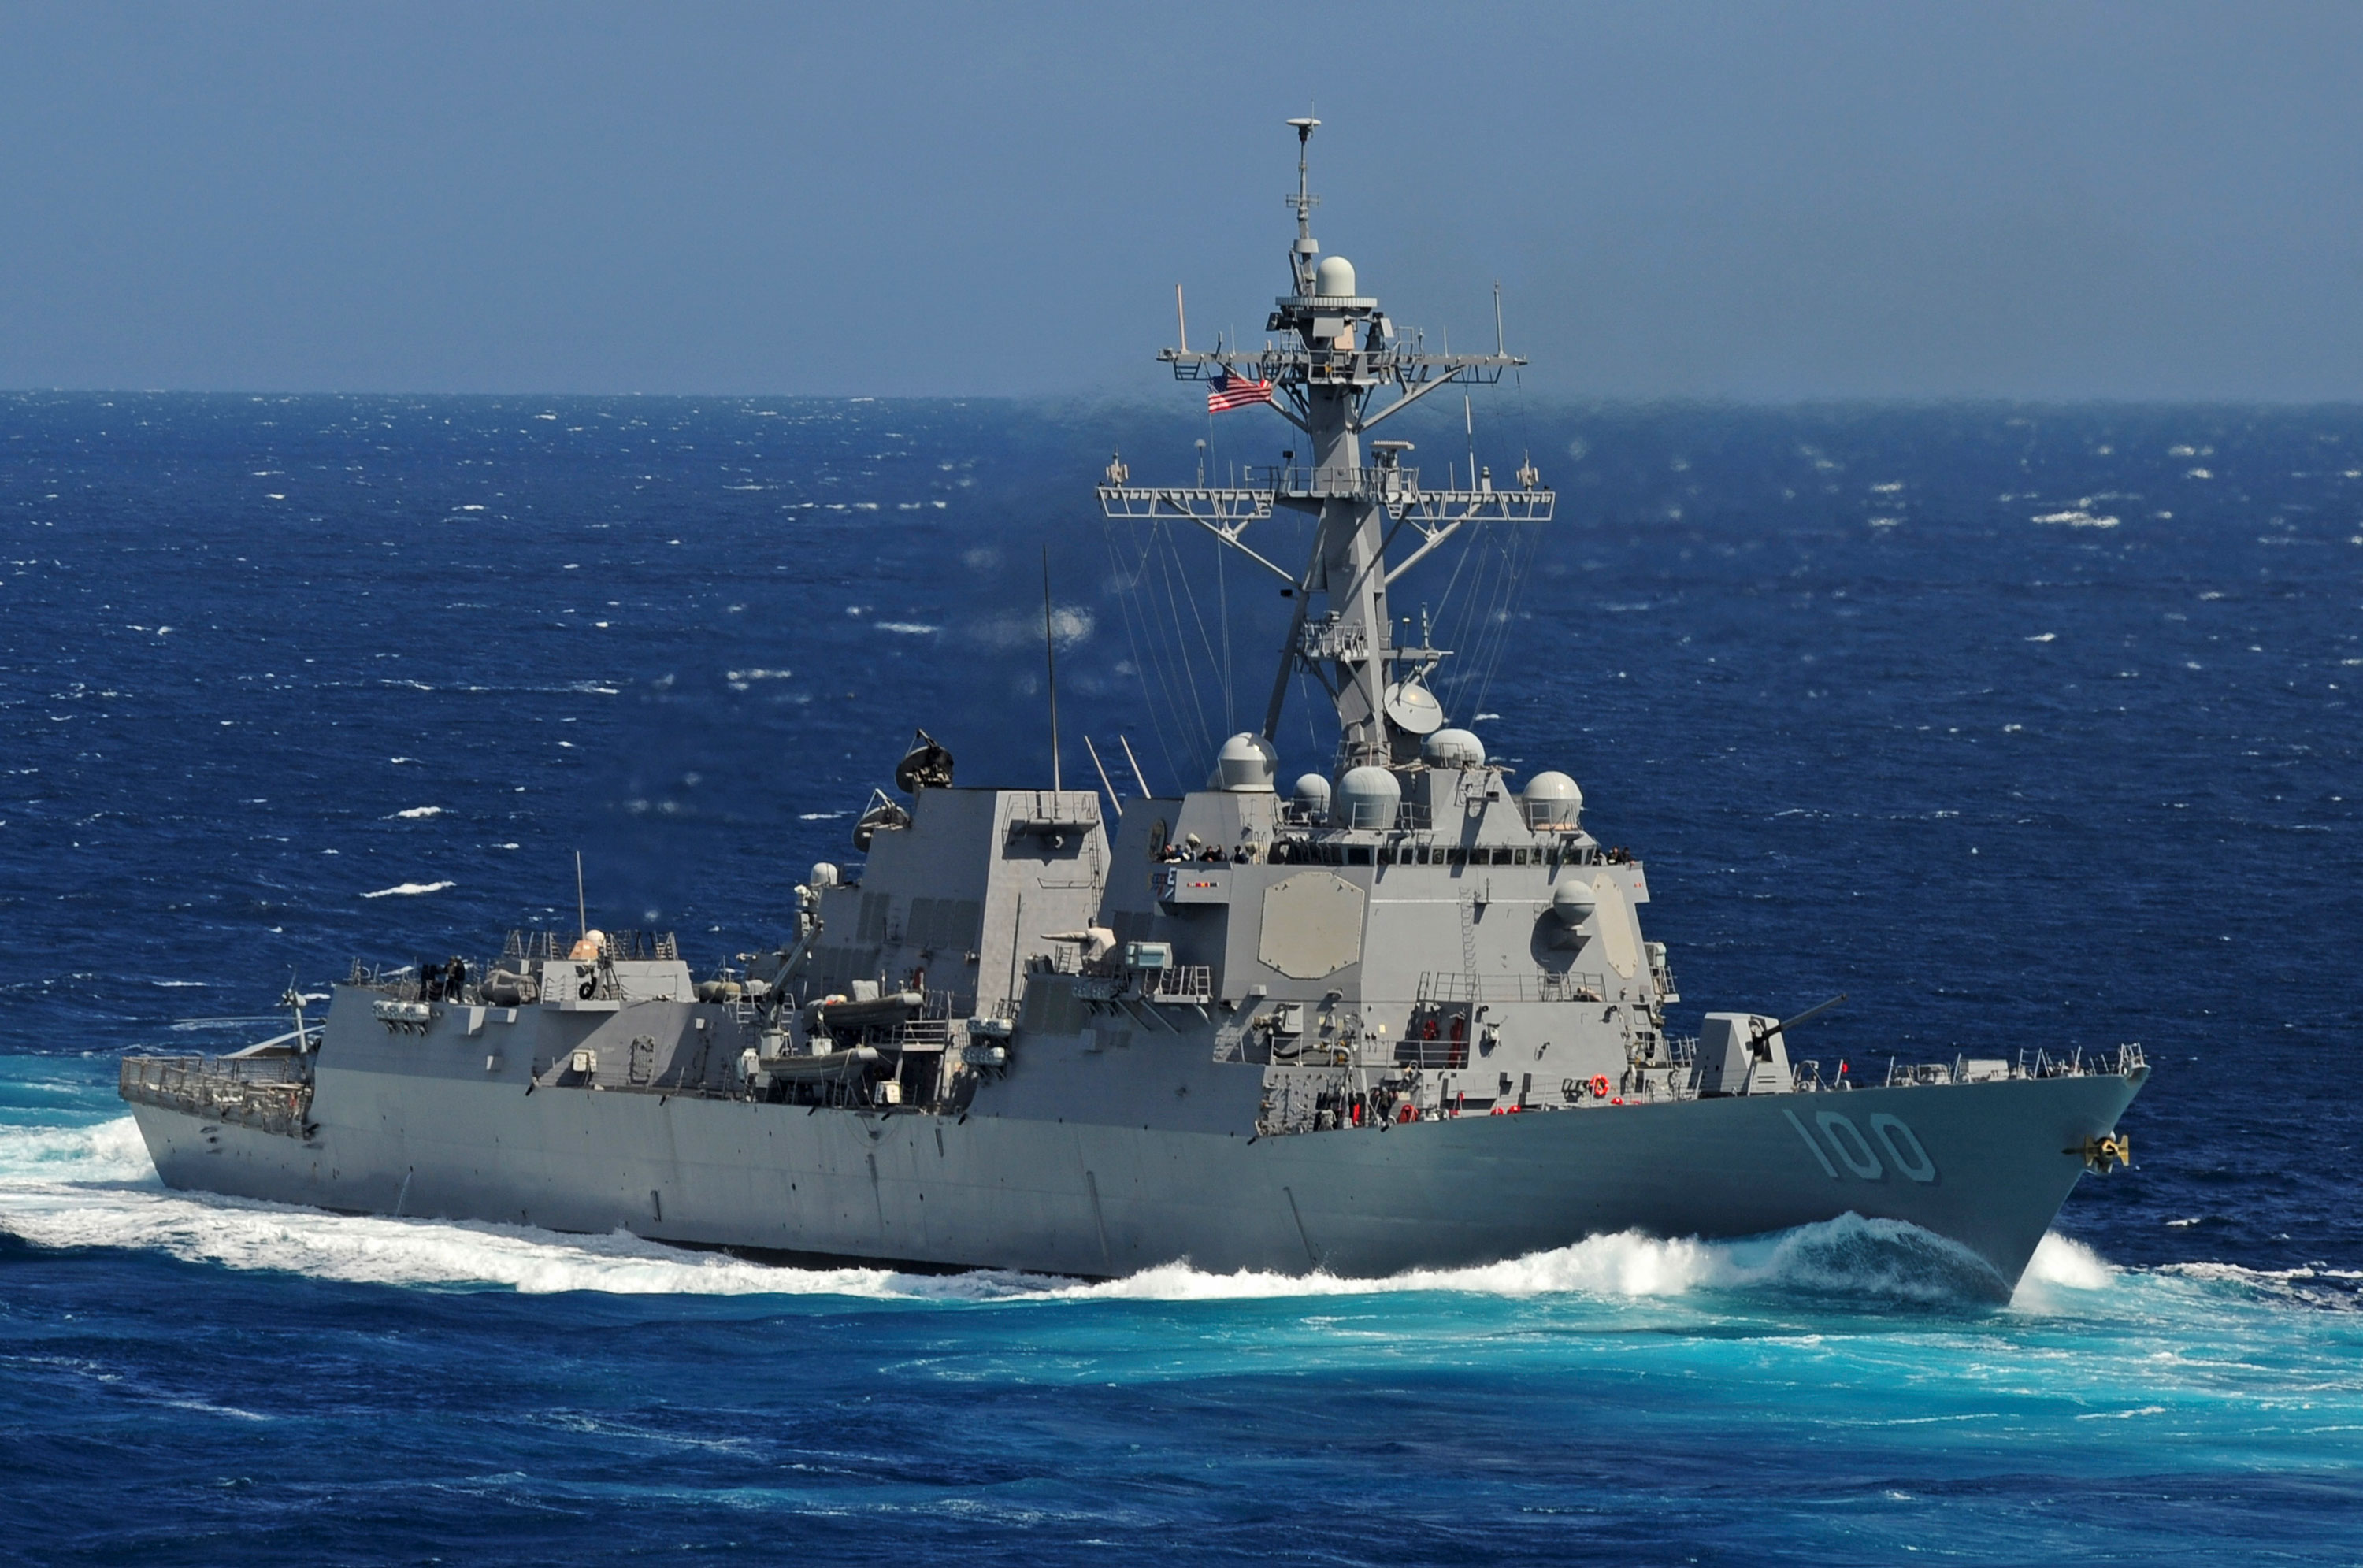 The USS Kidd is seen underway in the Pacific Ocean on May 18, 2011.